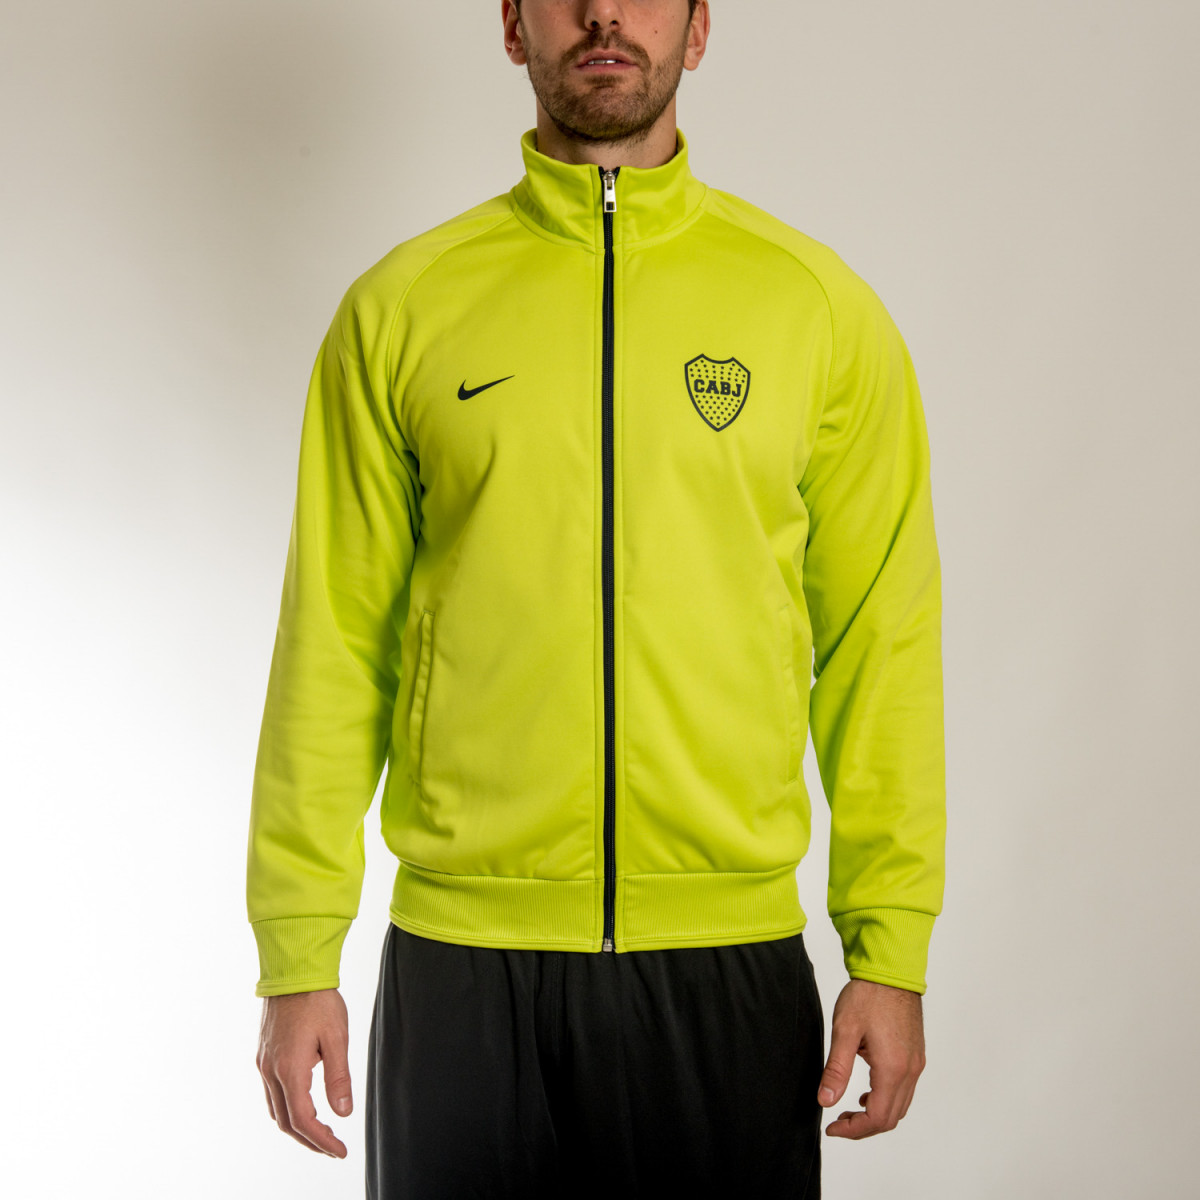 CAMPERA NIKE BOCA CORE TRAINER JKT